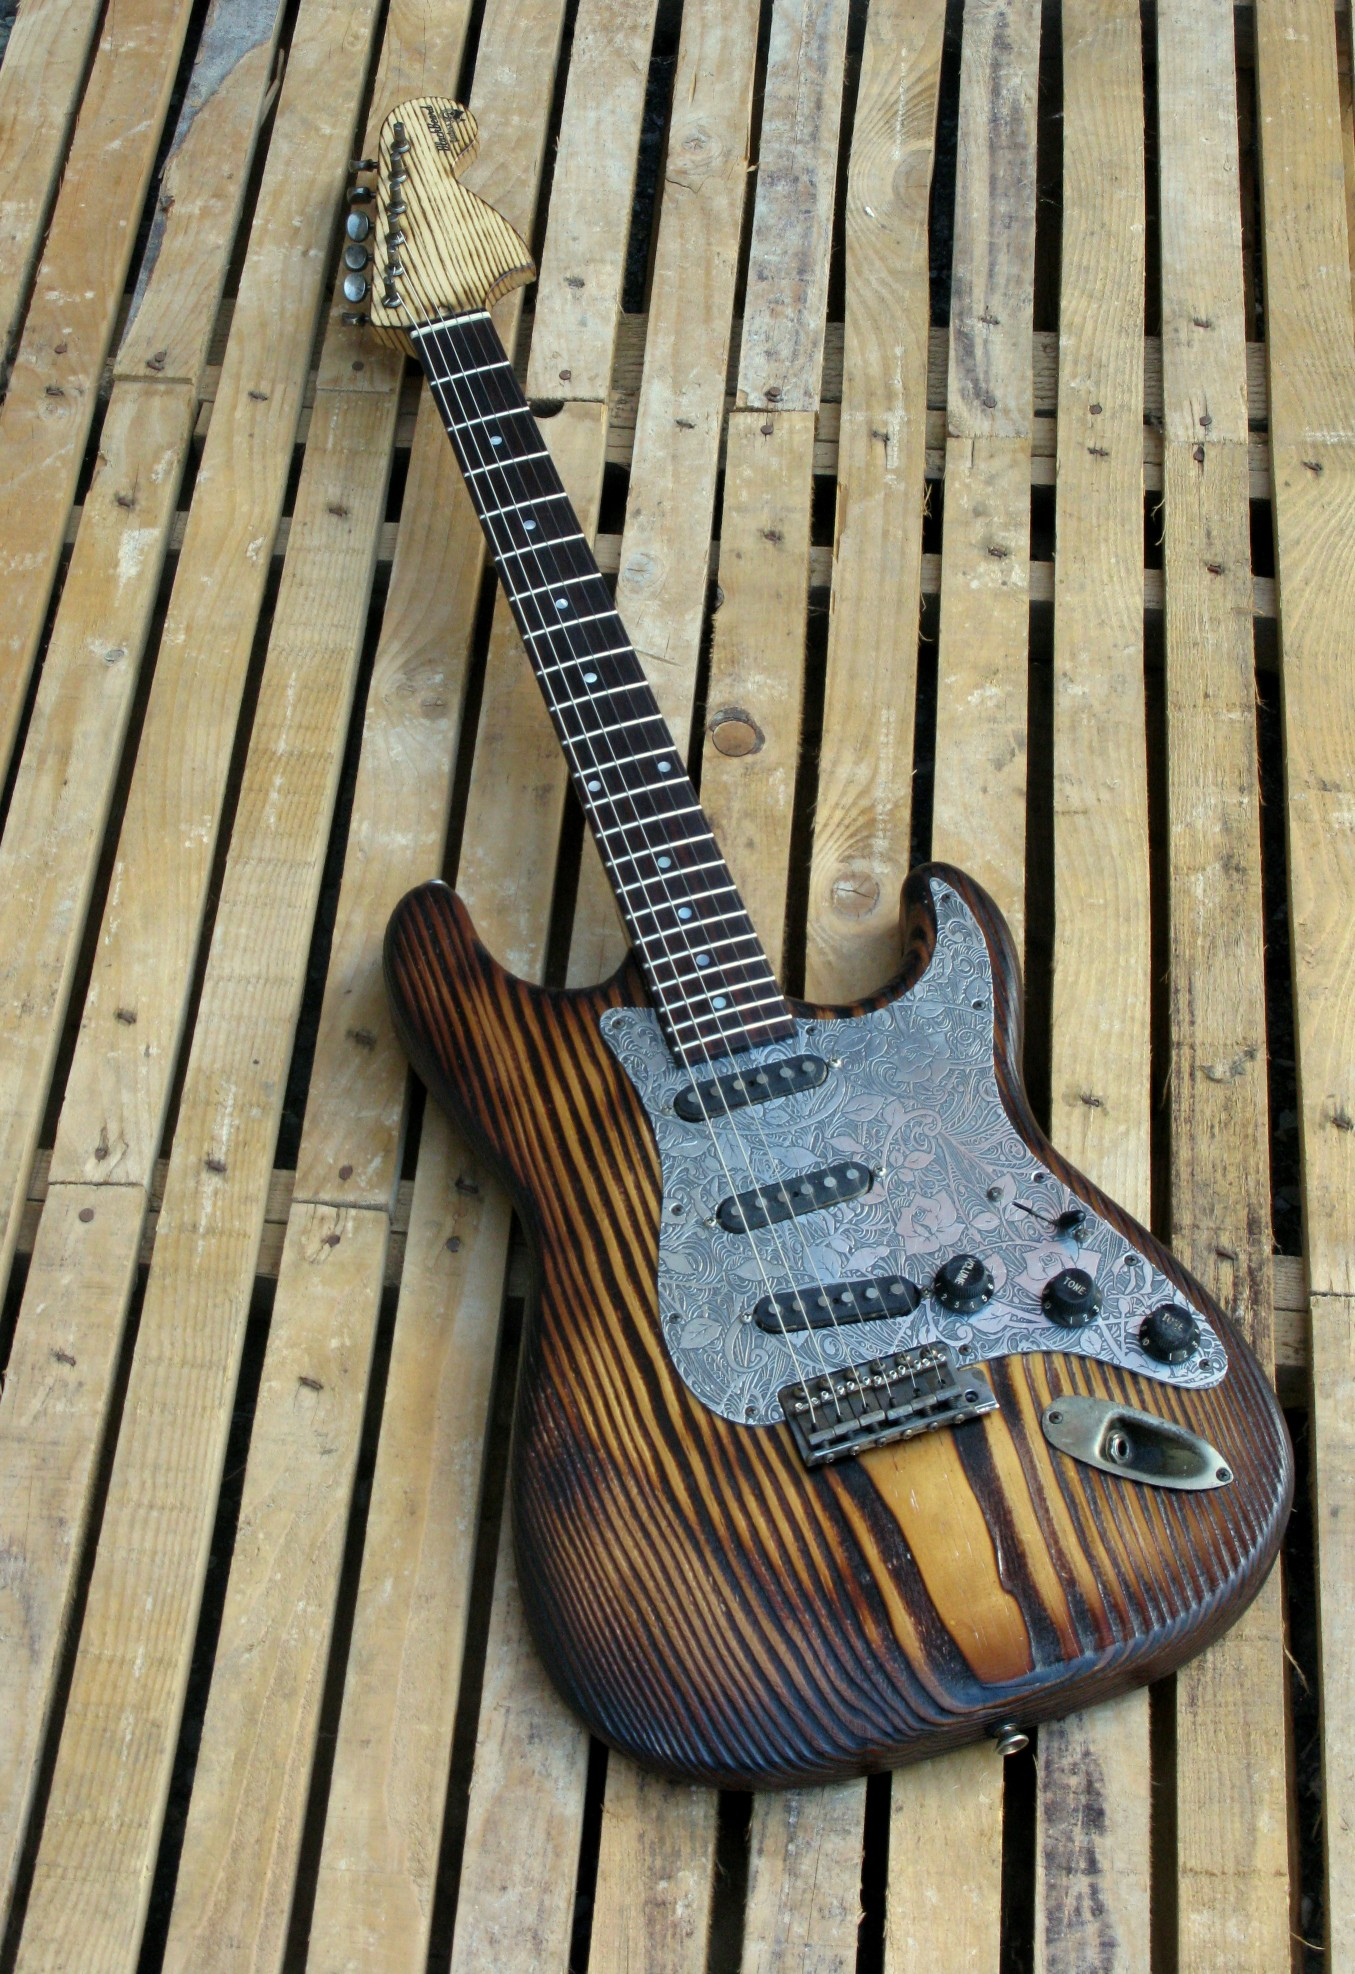 Chitarra Stratocaster in pino roasted